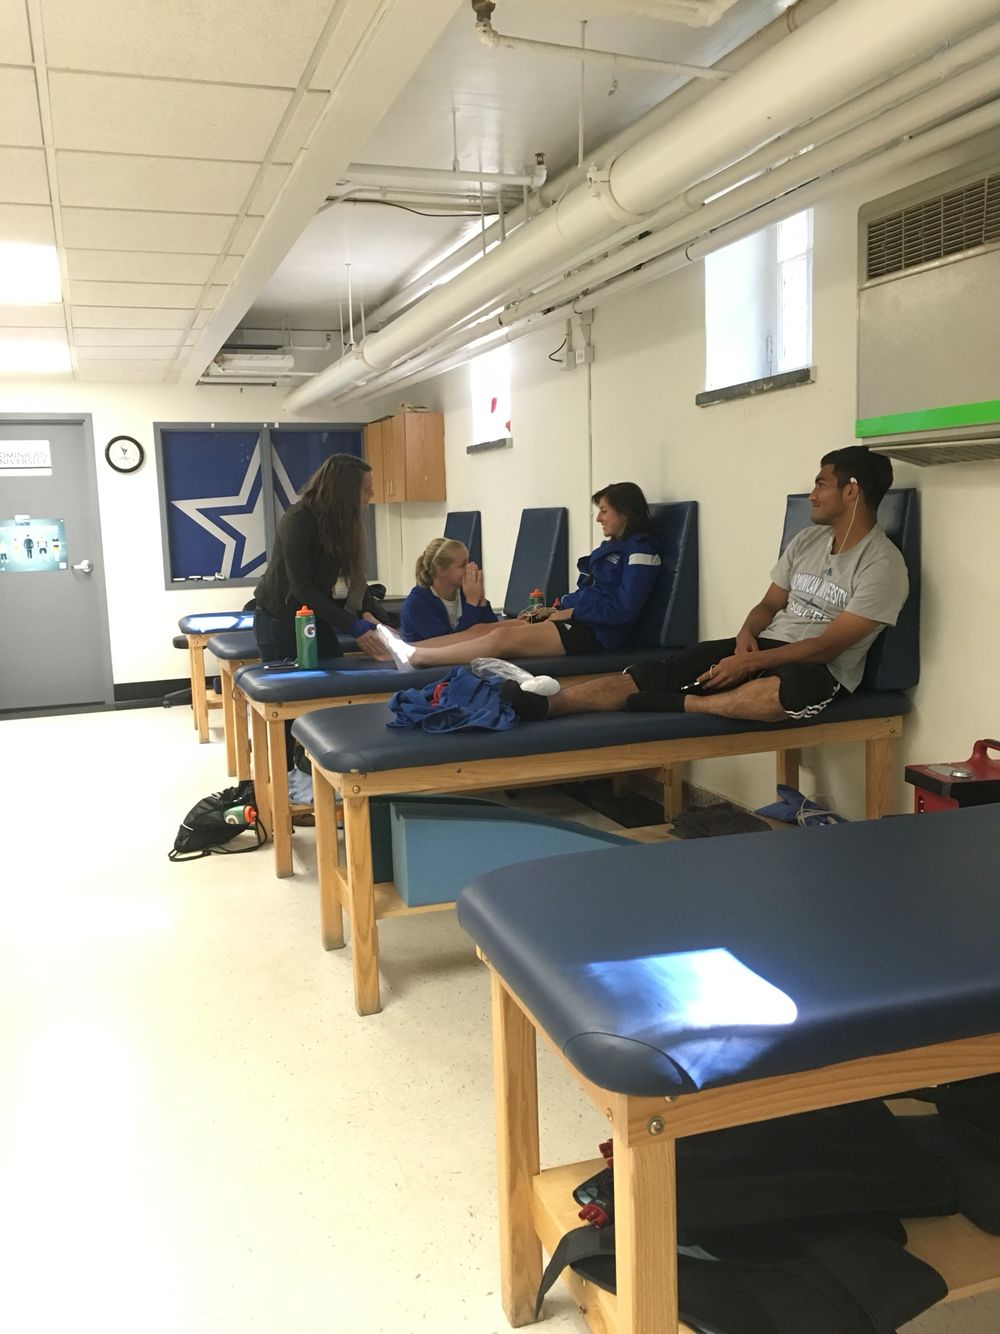 athletic training budget facility Athletic training facility design project  you have been given a $45,000  budget to stock and supply a brand new athletic training room at your school.